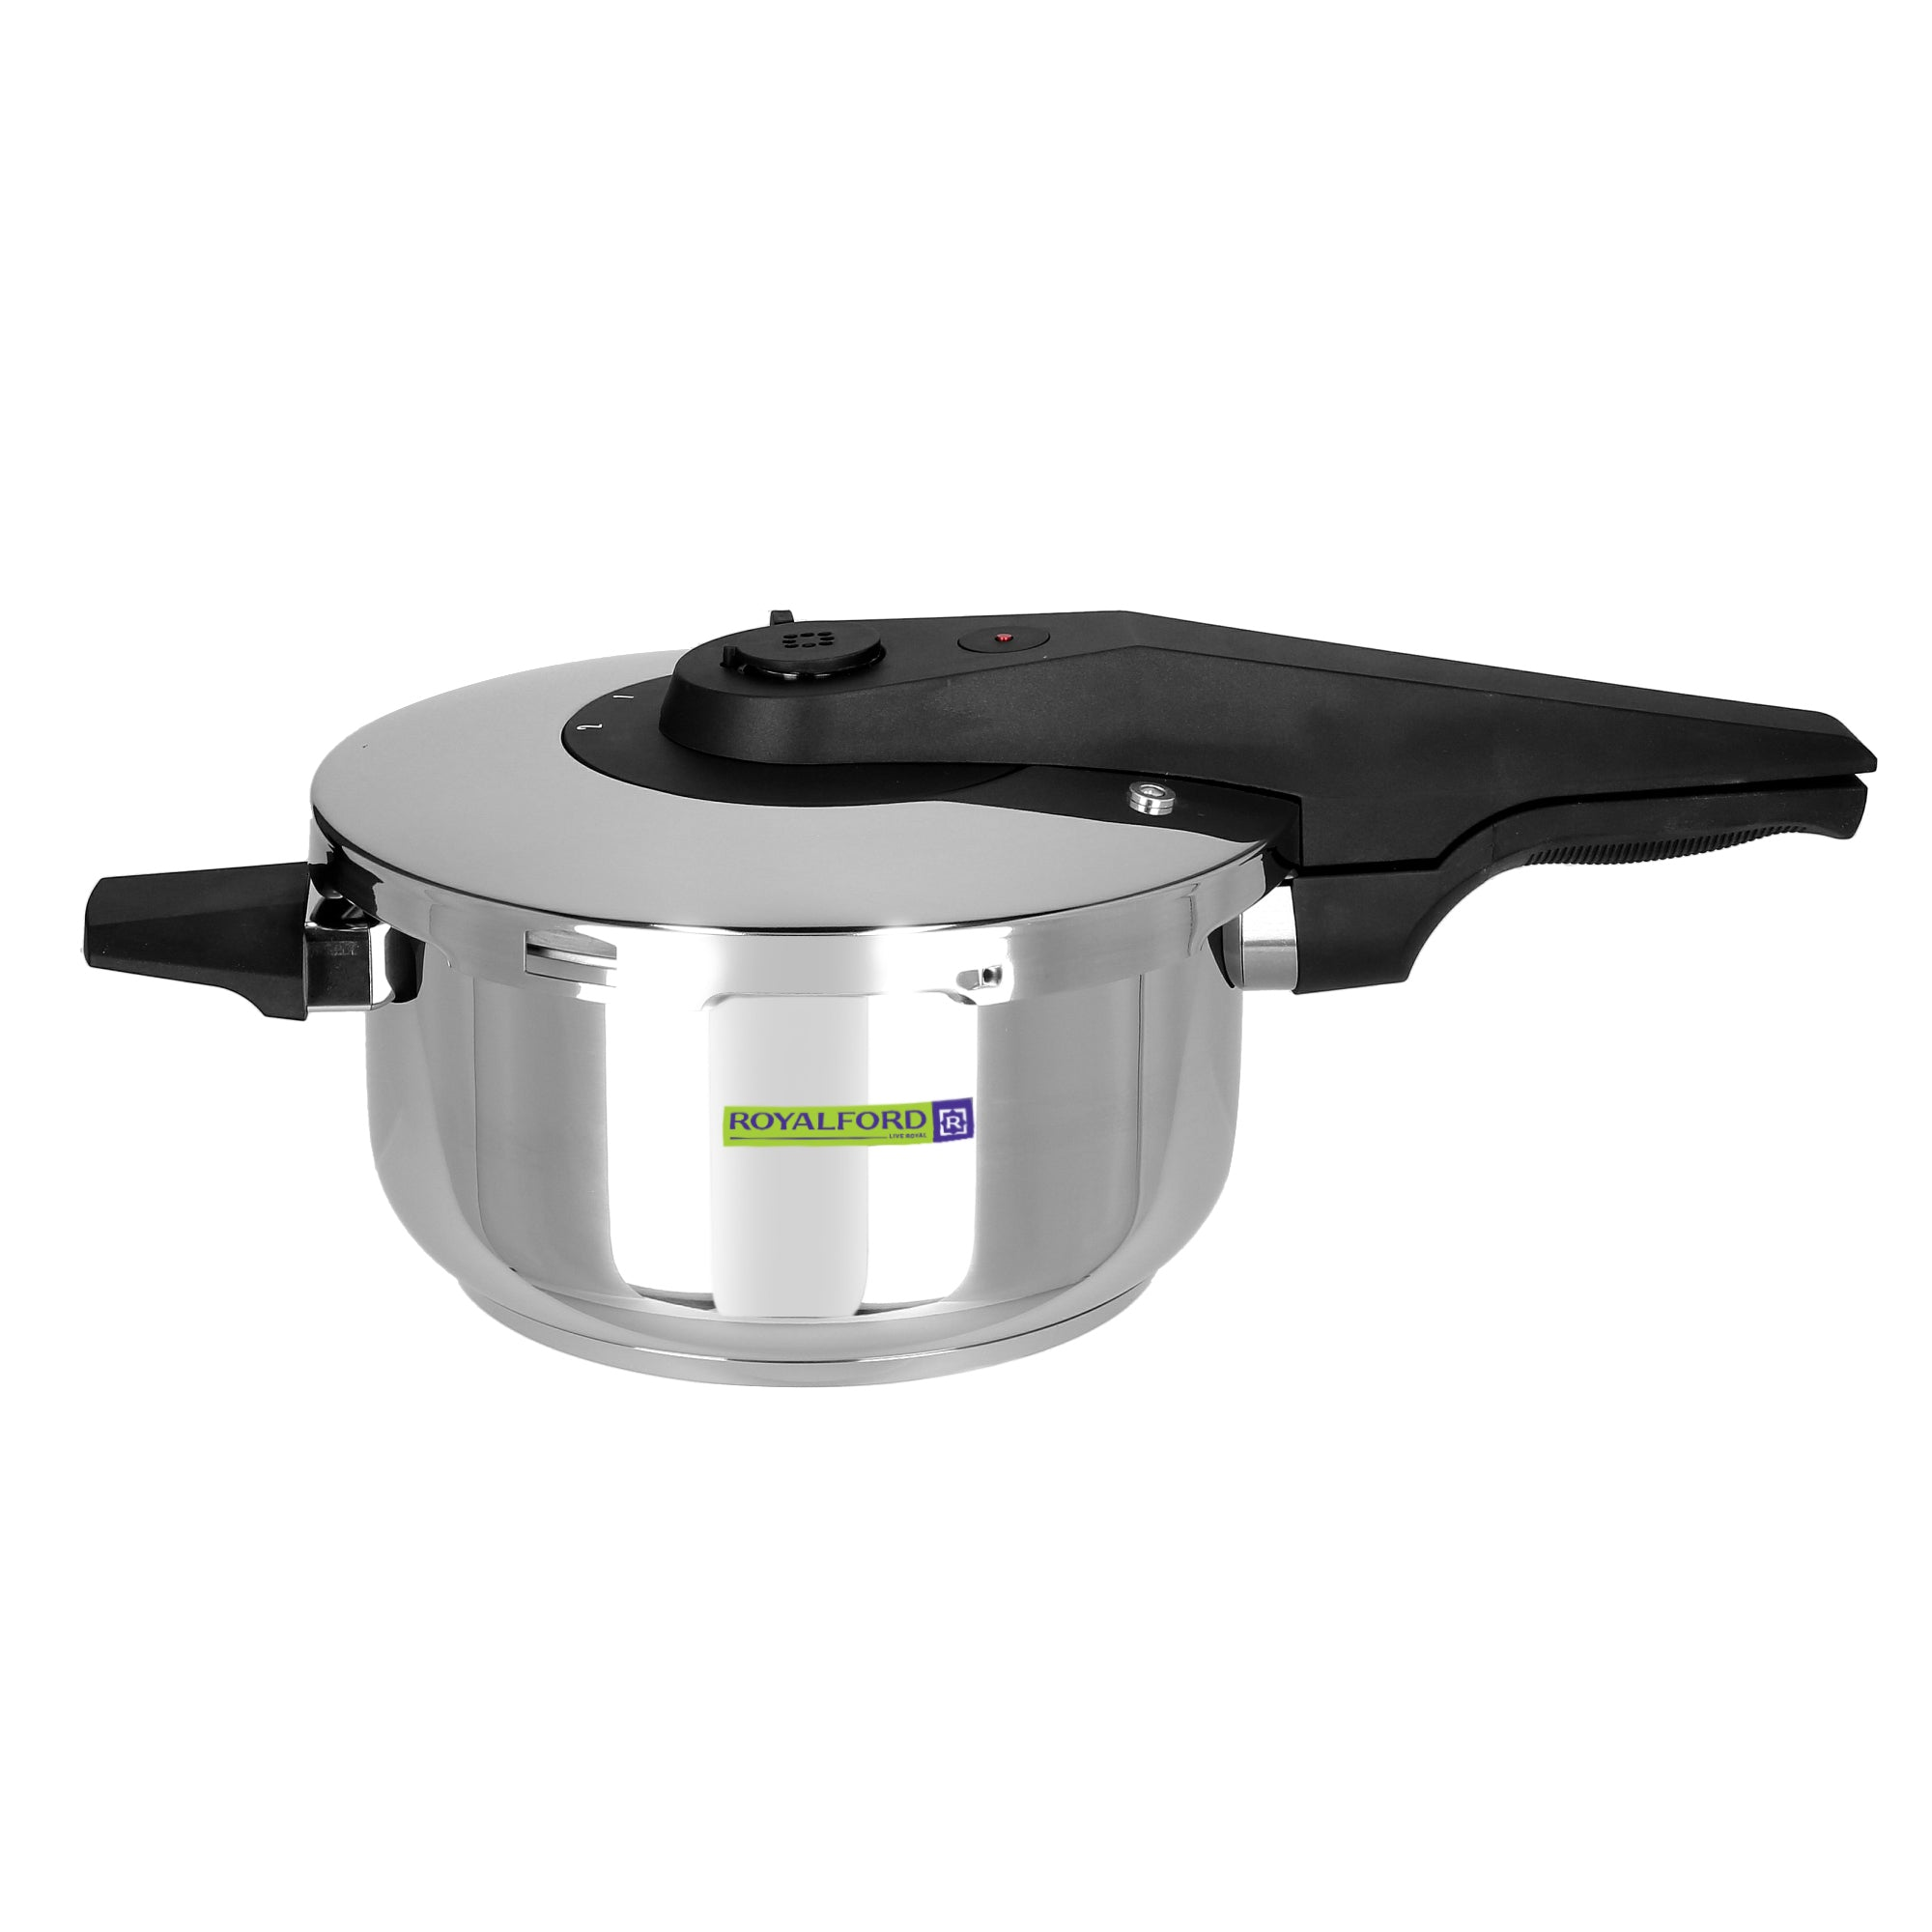 Royalford RF8603 Asan Induction Pressure Cooker, 4L